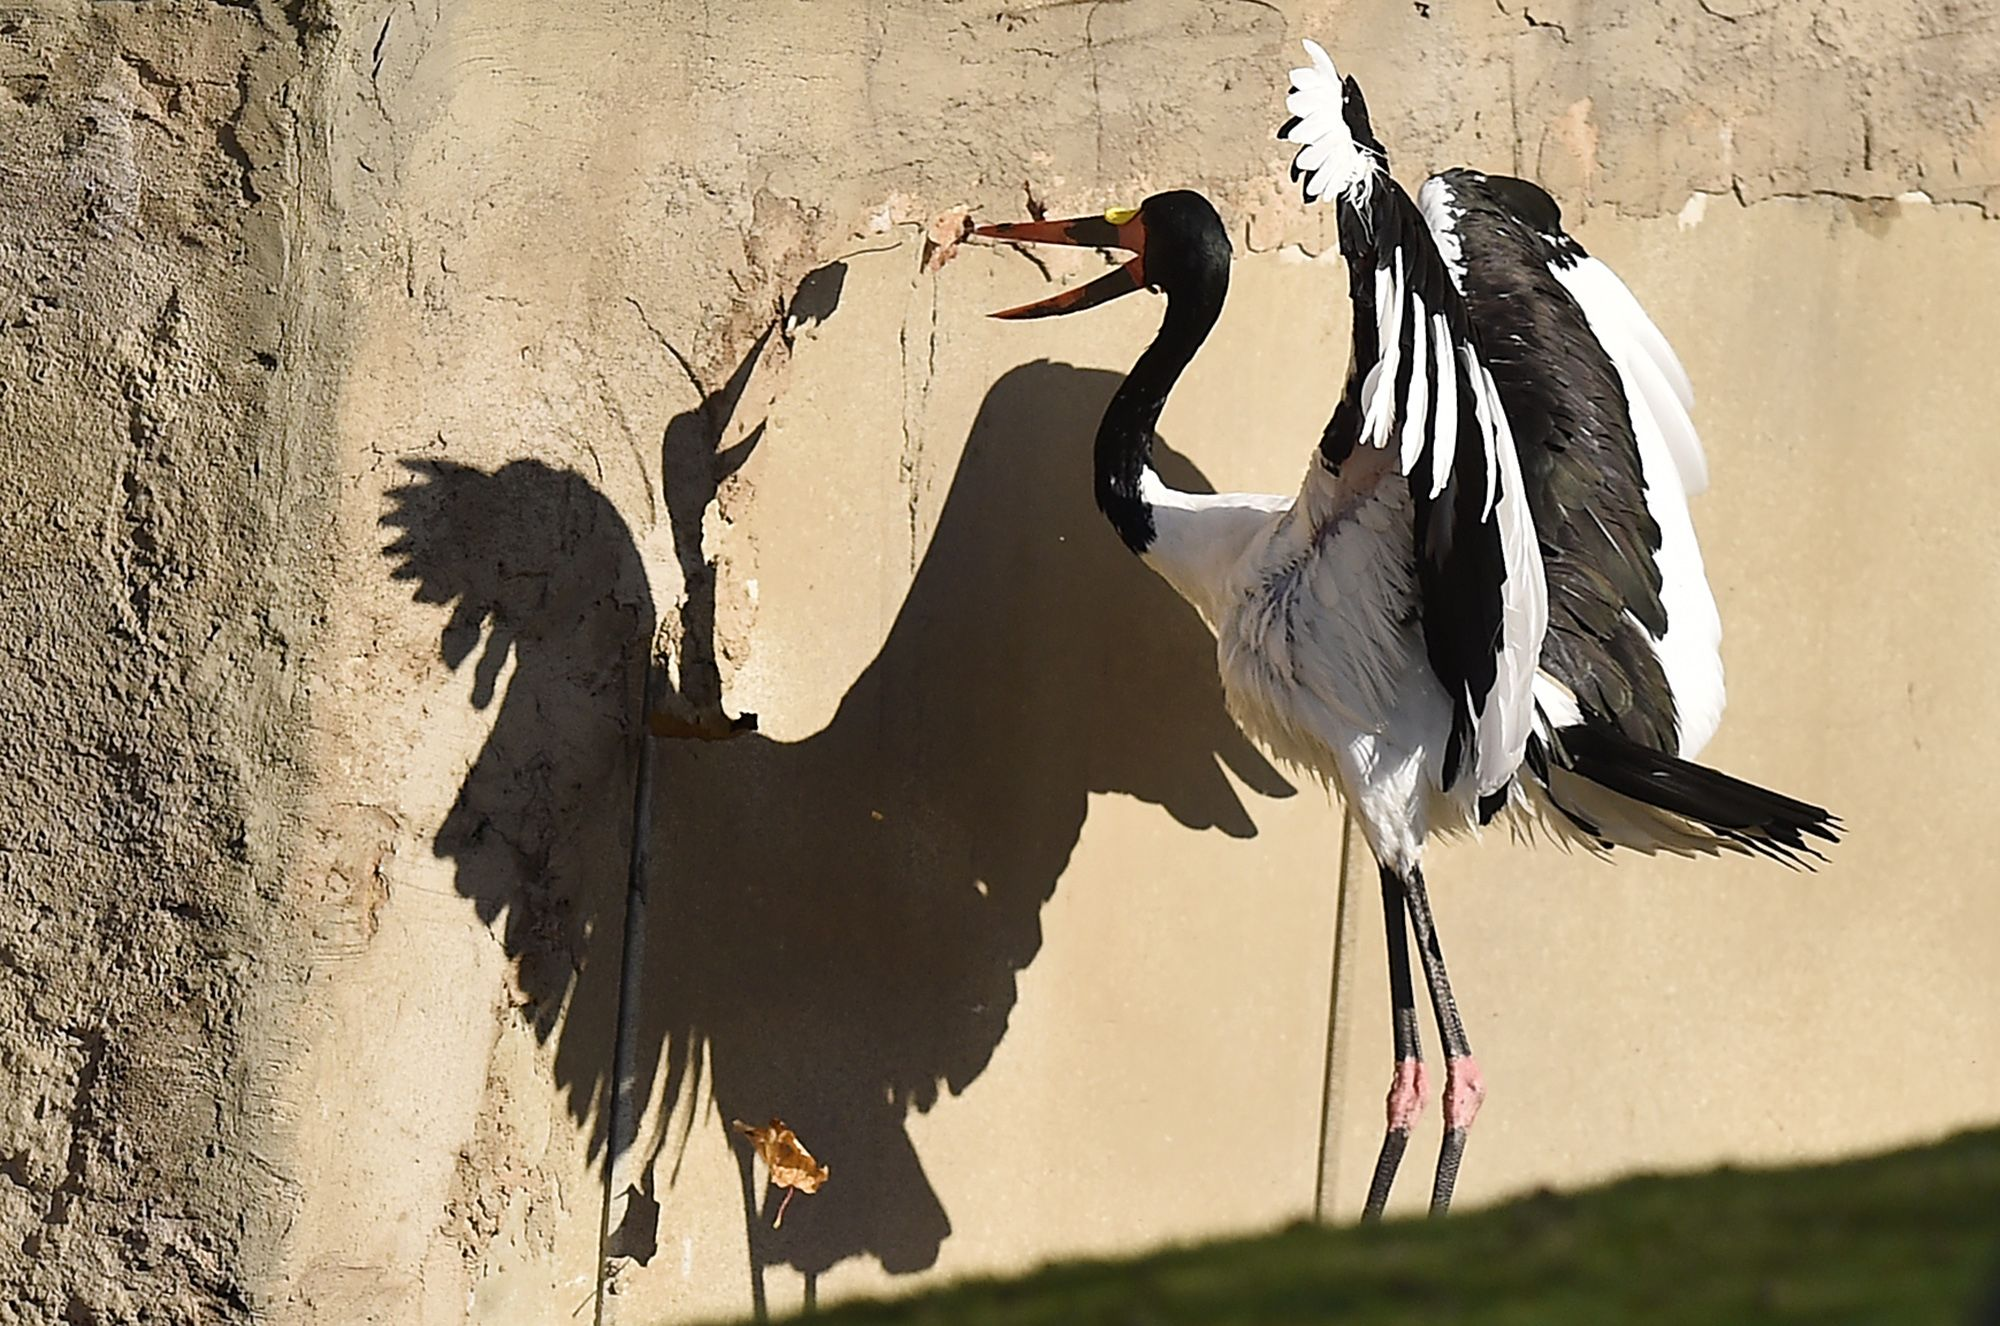 A saddle-billed stork casts a shadow as it catches a falling leaf on a sunny autumn day at the zoo in Gelsenkirchen, Germany.